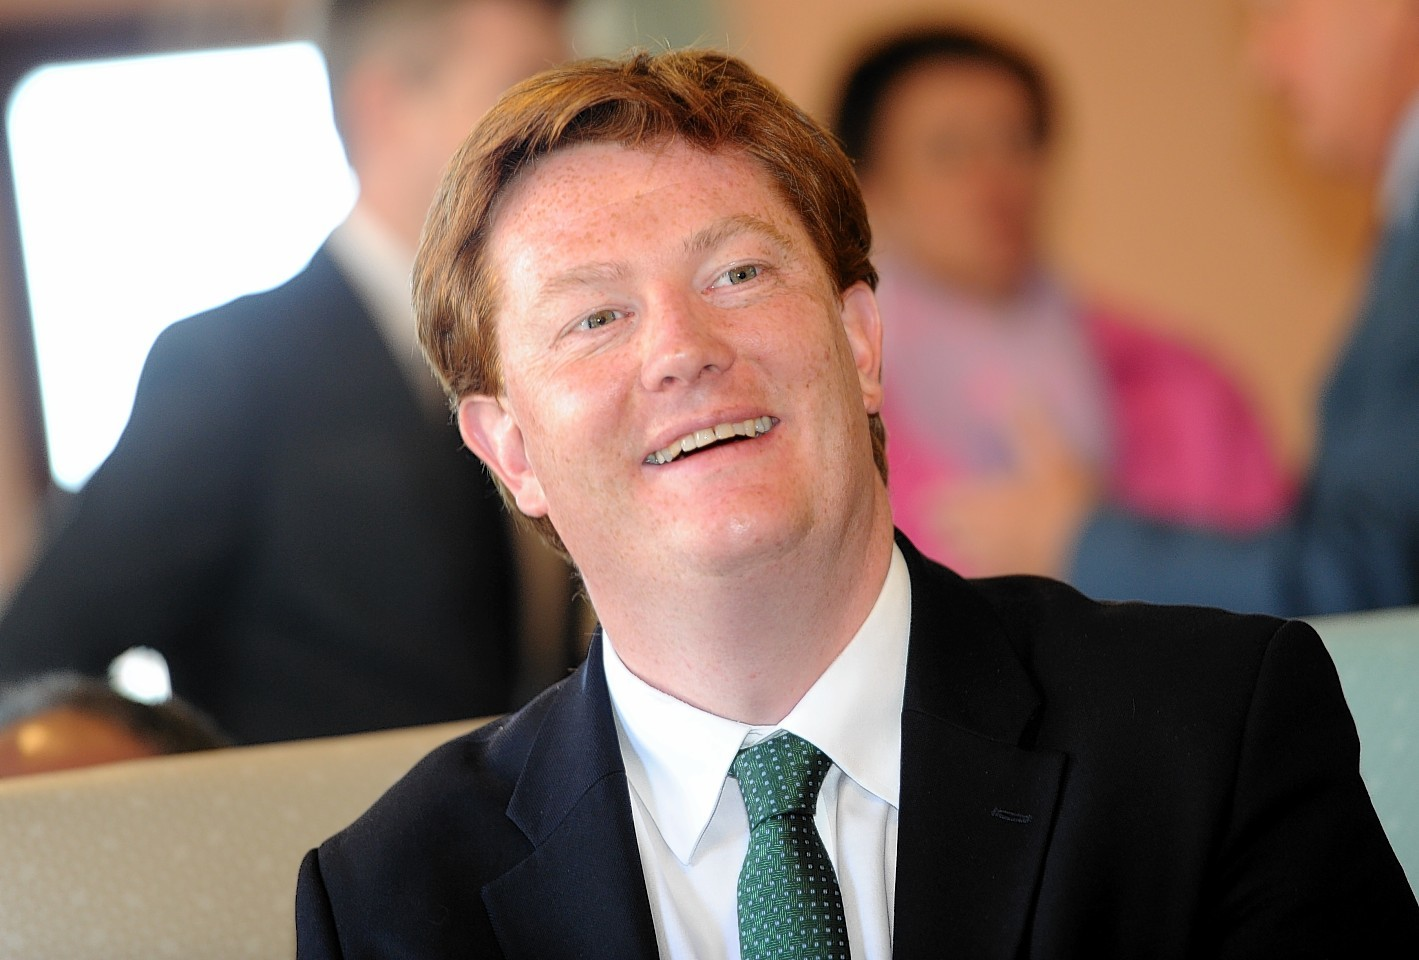 Danny Alexander could be granted more time, even if he loses his seat